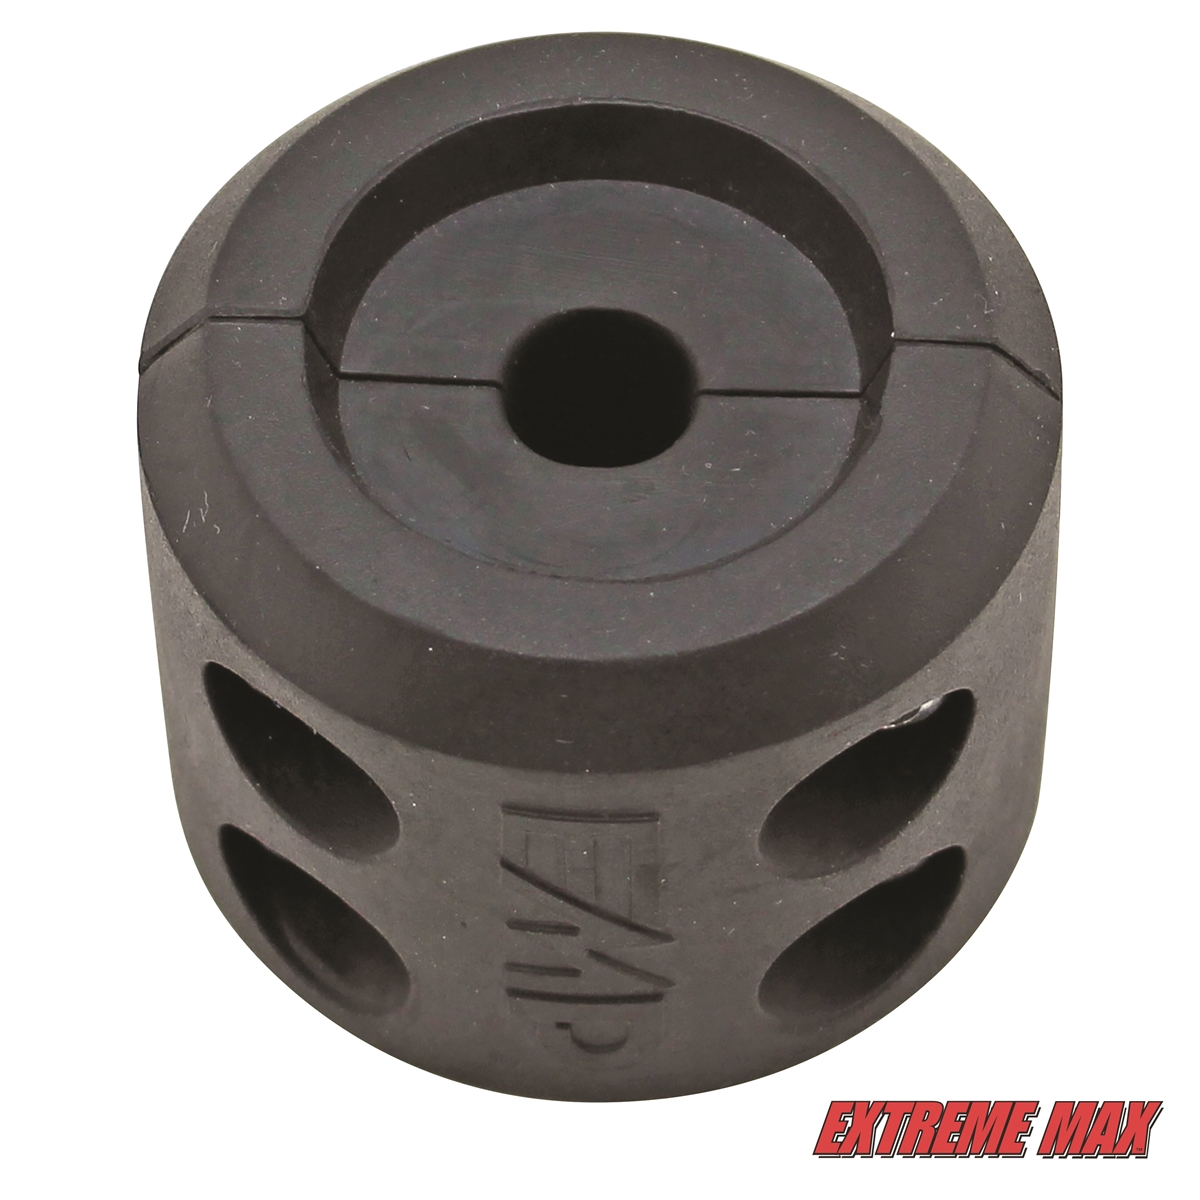 Extreme Max 5600.3192 2 Piece Quick Install Hook Stopper /& Line Saver Winches